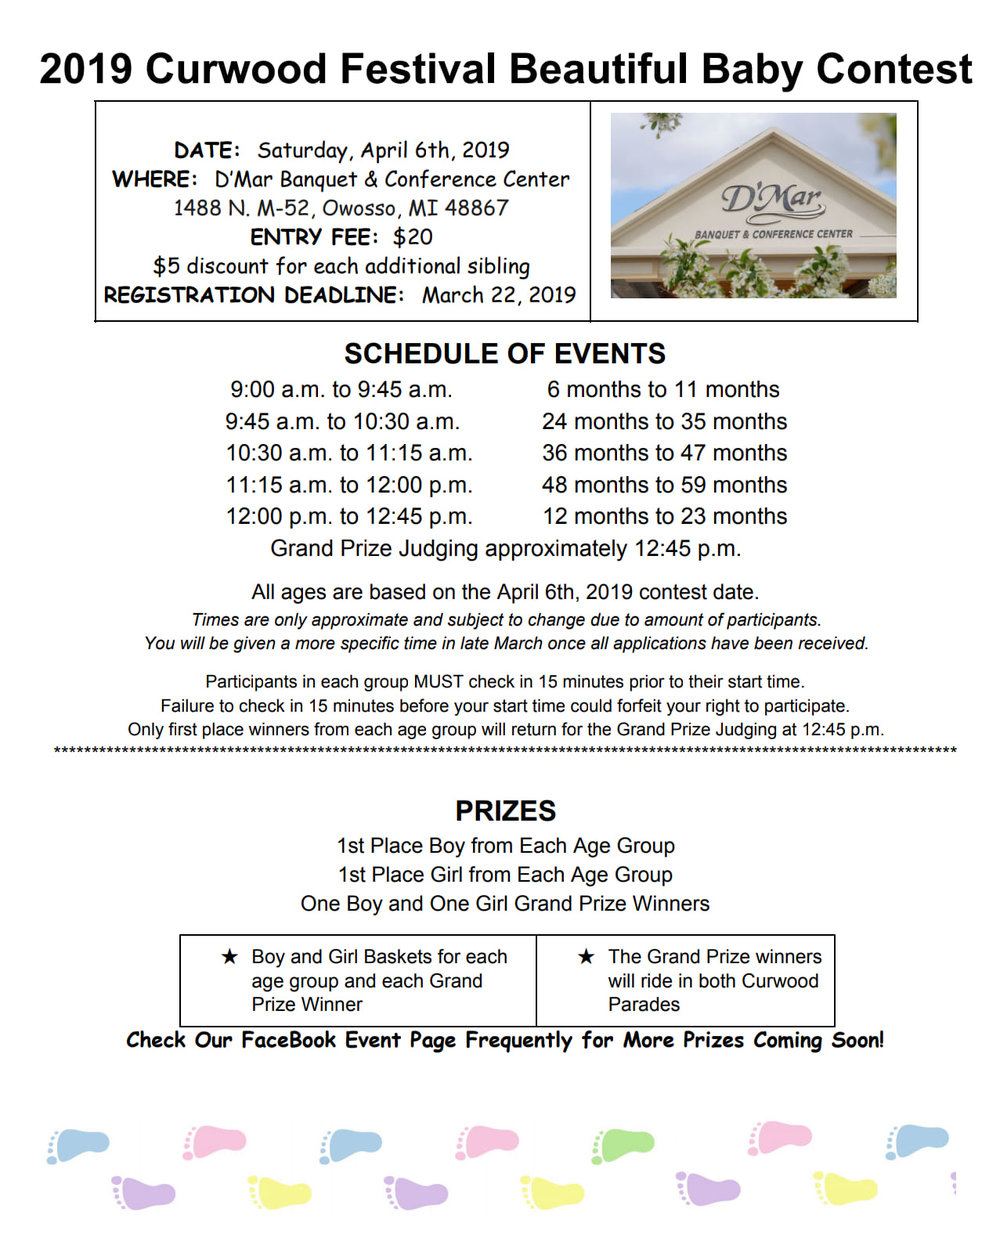 2019 Curwood Beautiful Baby Contest — Visit Owosso